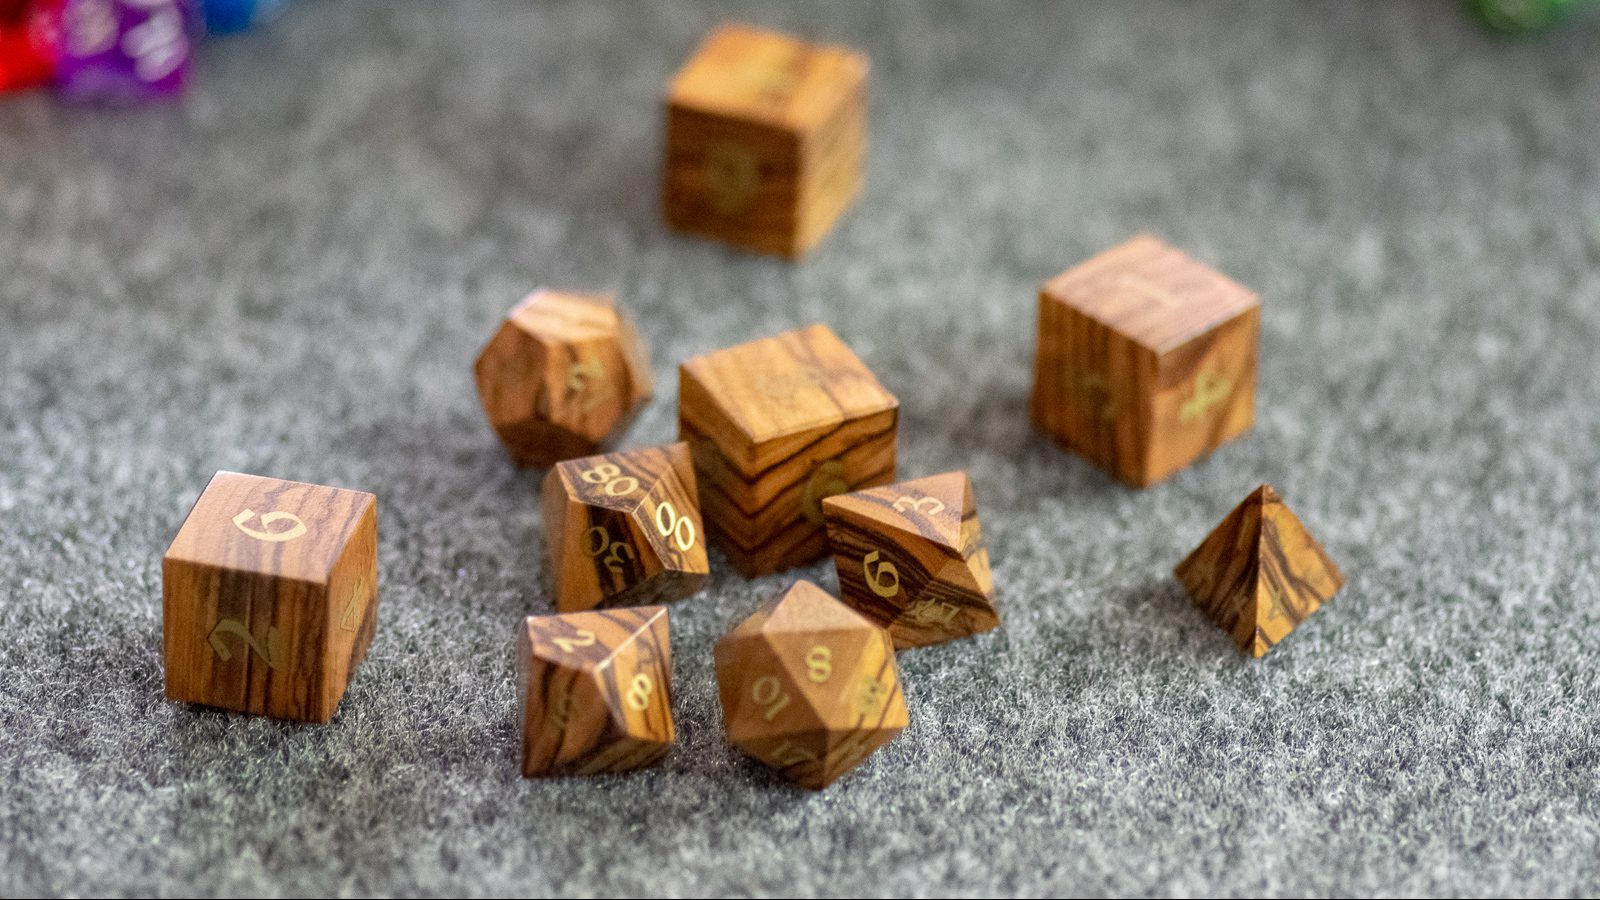 A Roll To Die Forartisan Dice Bethlehem Olive Wood Archdruid Dice